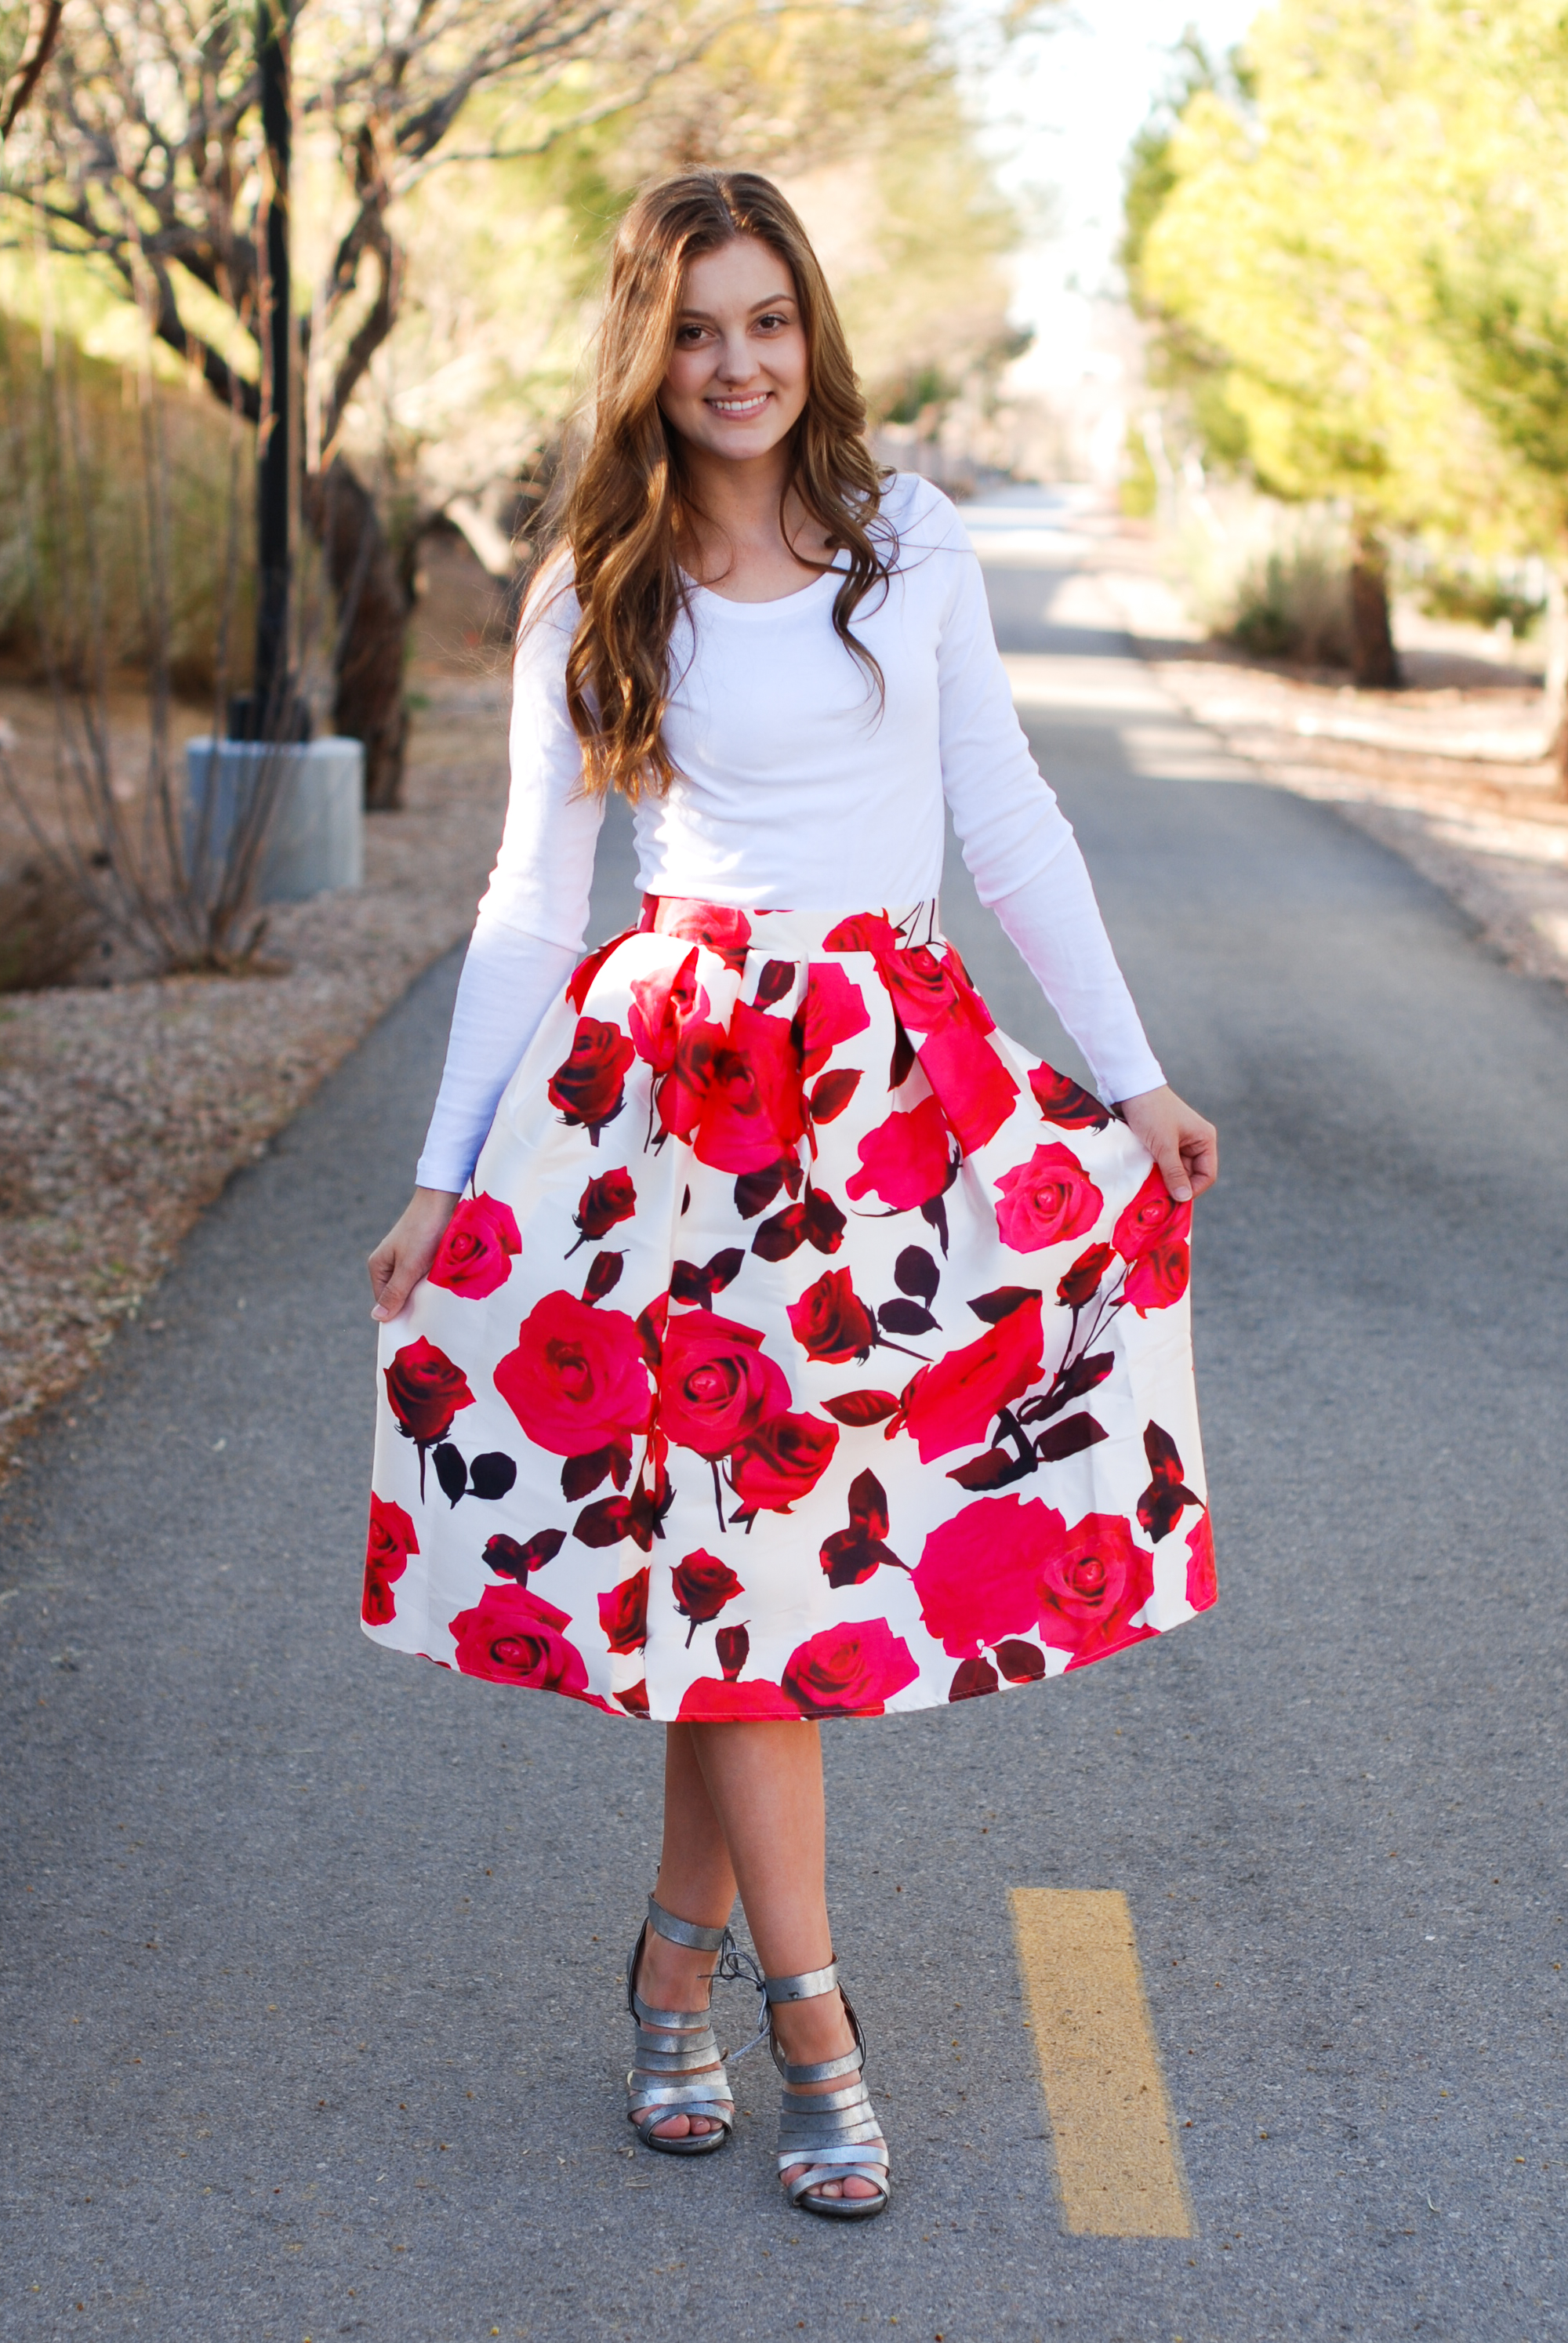 be-mine-vday-valentineoutfit-outfitinspo-sincerely-hales